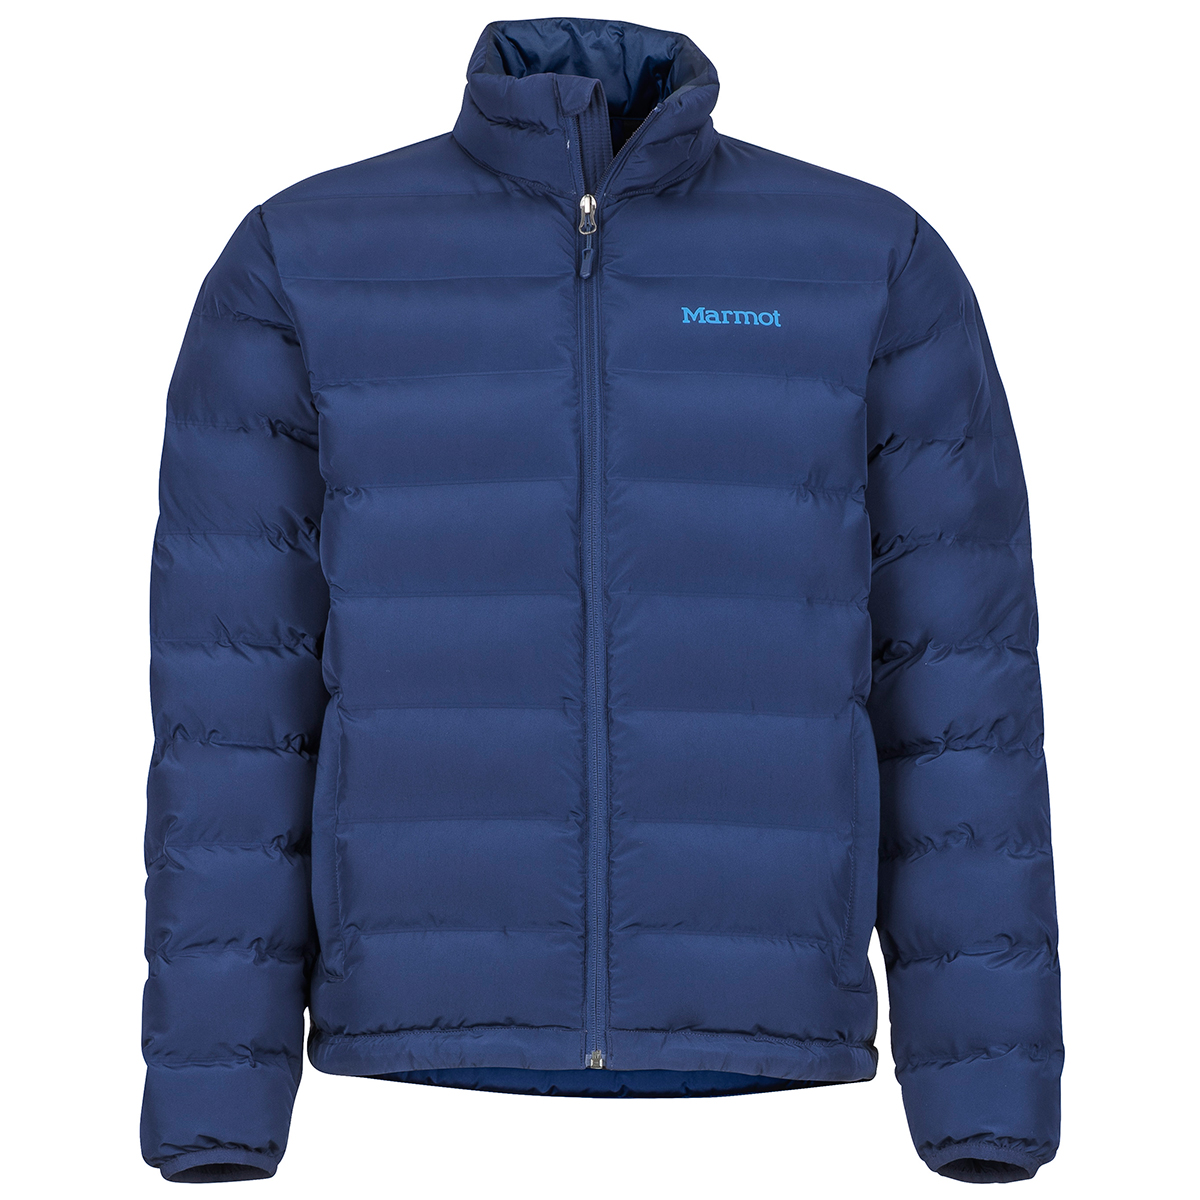 Marmot Men's Alassian Featherless Jacket - Blue, XL